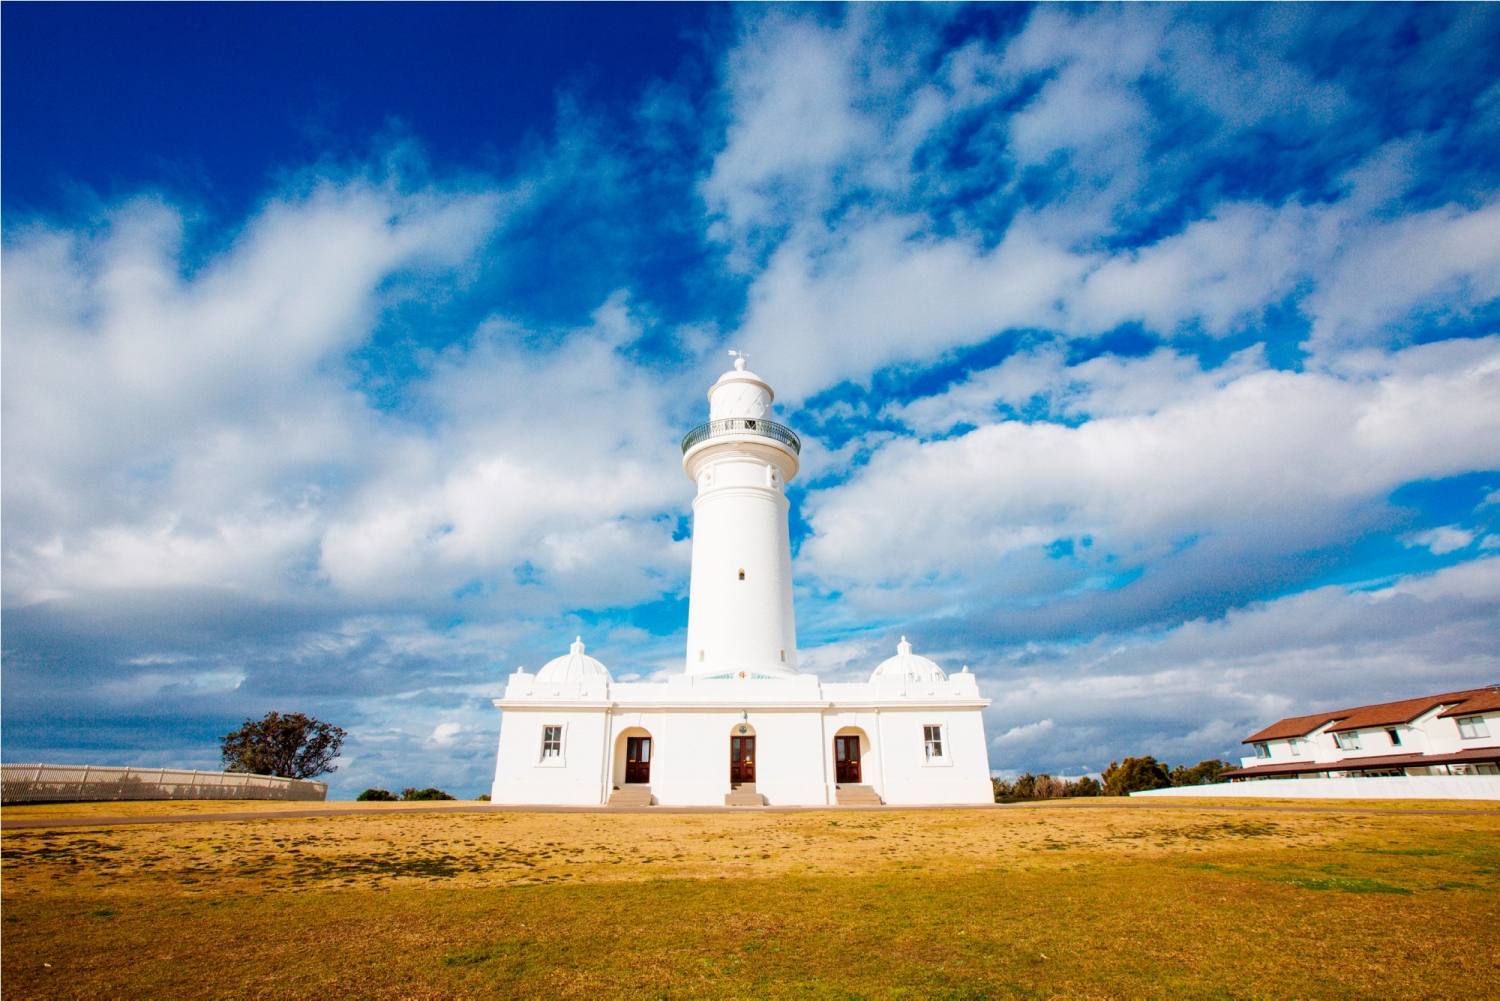 White lighthouse and outbuildings against blue sky.